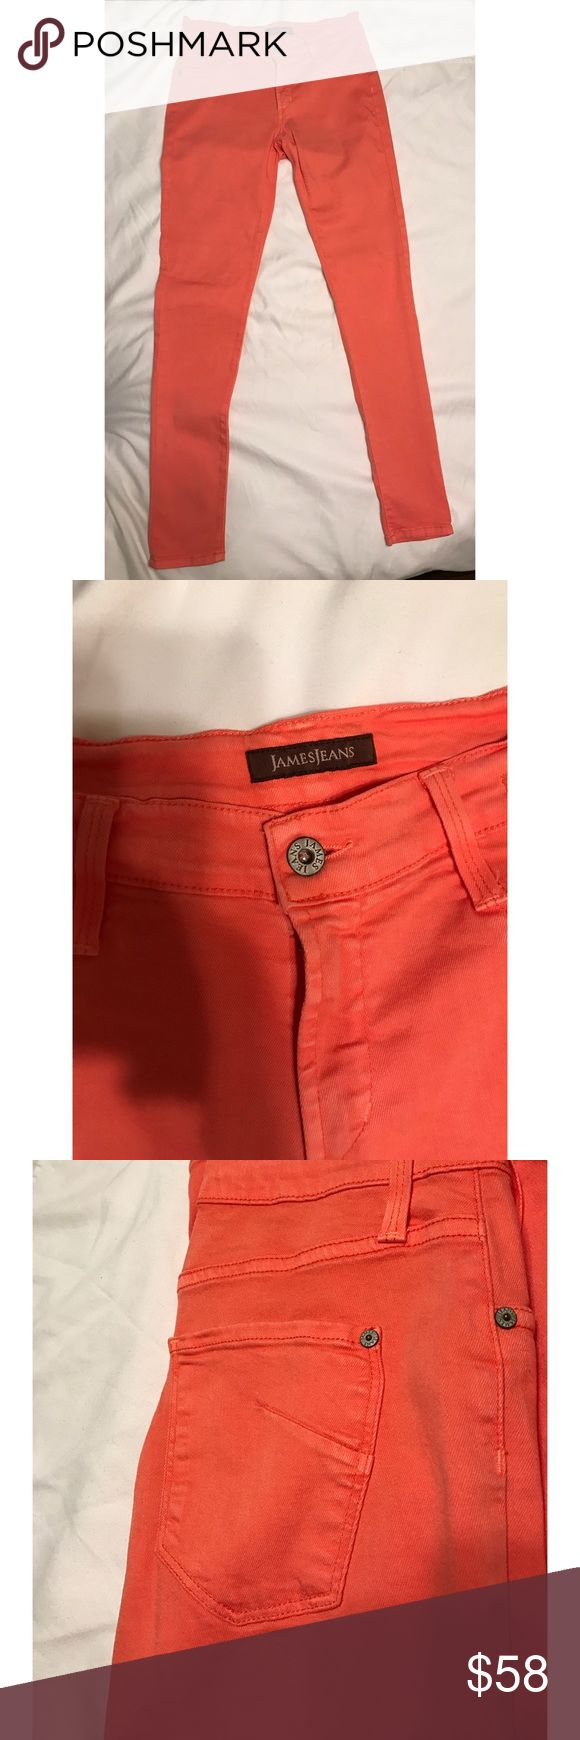 "James ""Twiggy"" coral jeans size 29 James 